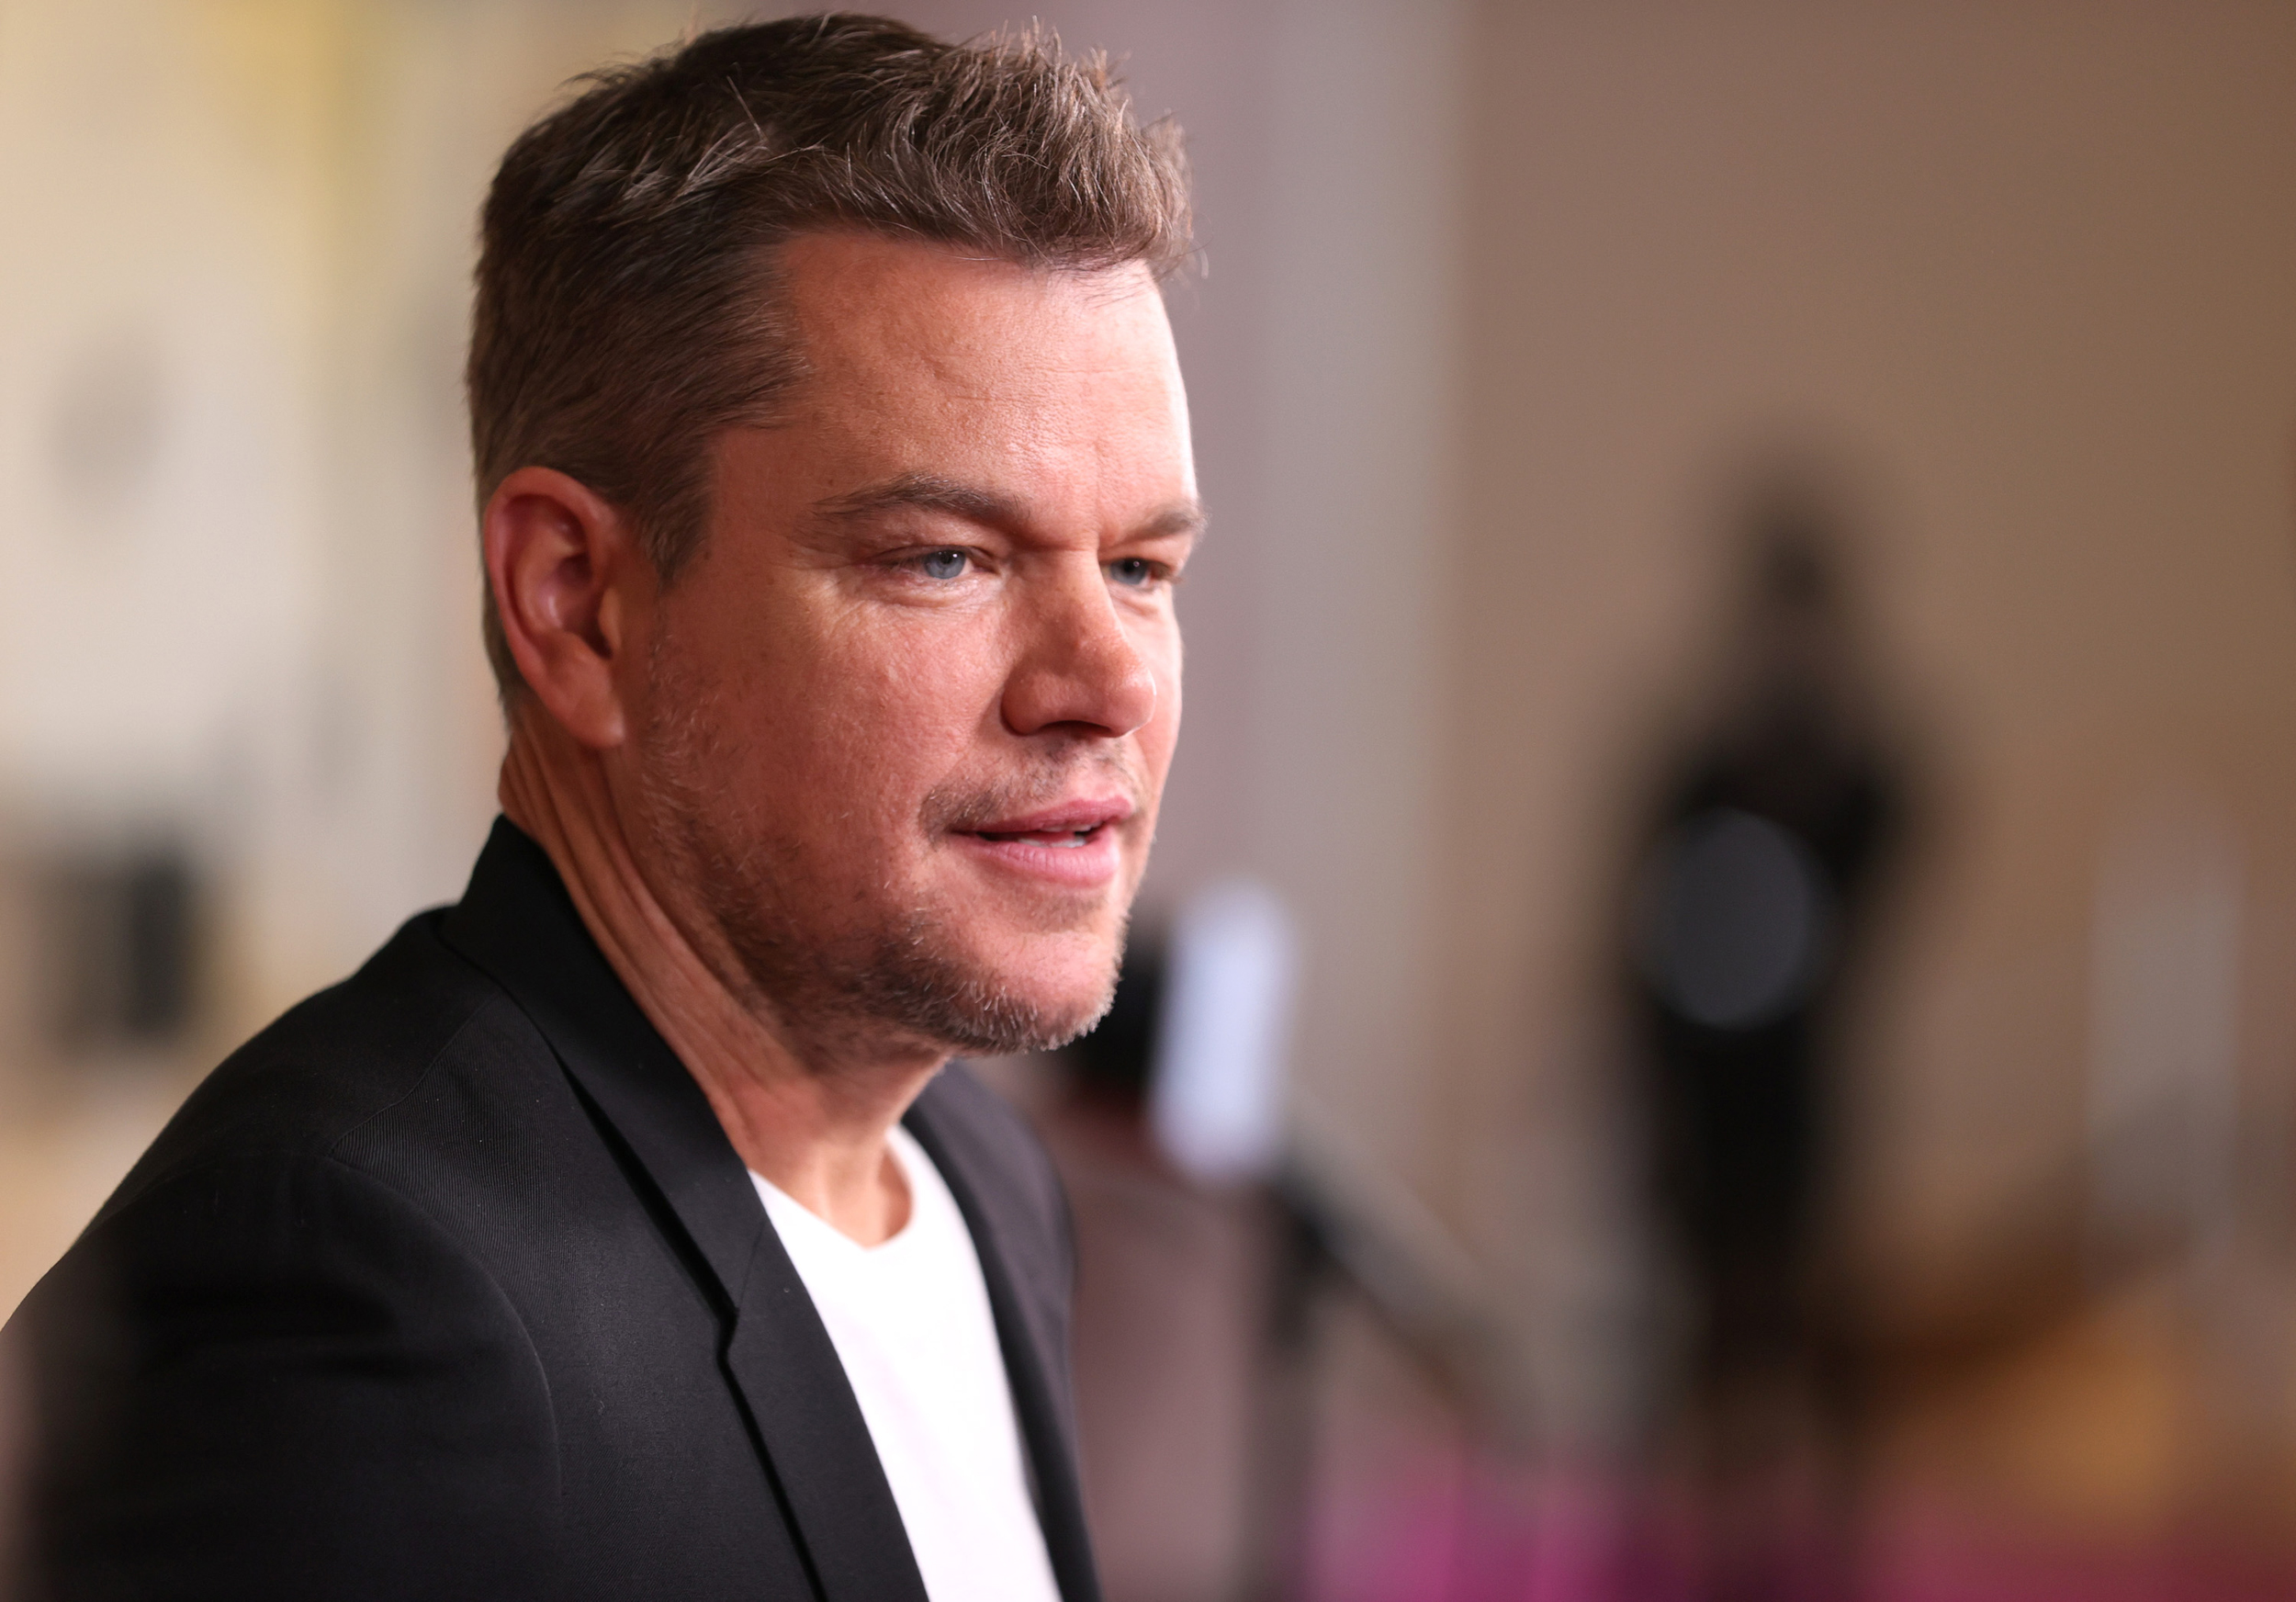 Matt Damon says he stopped using 'f-slur for a homosexual' after daughter told him it was 'dangerous'